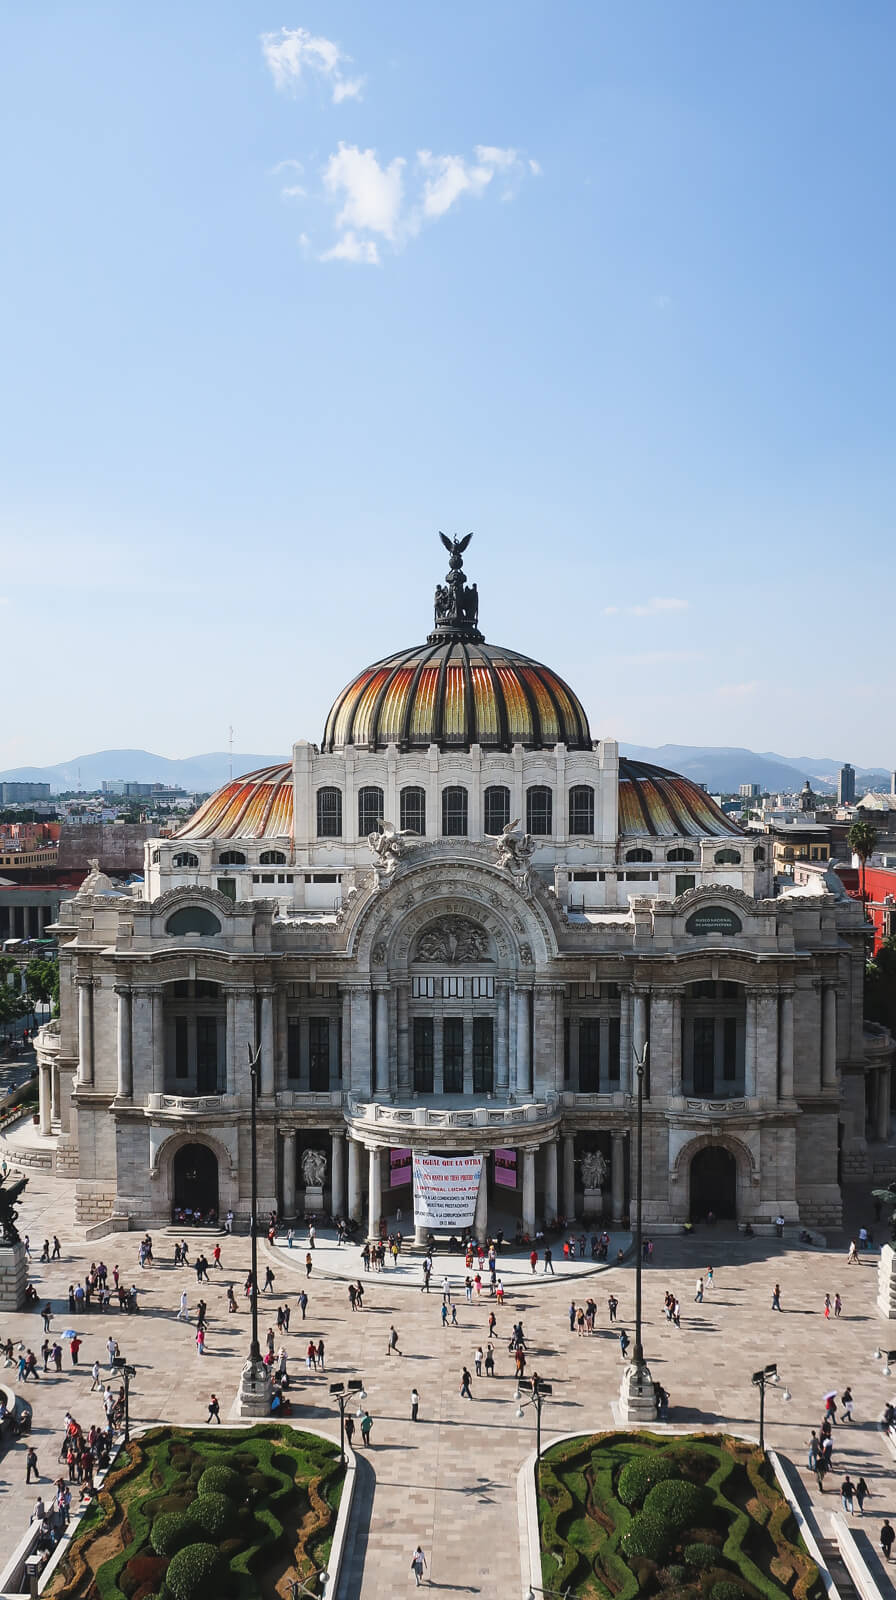 The Bellas Artes palace in Mexico City